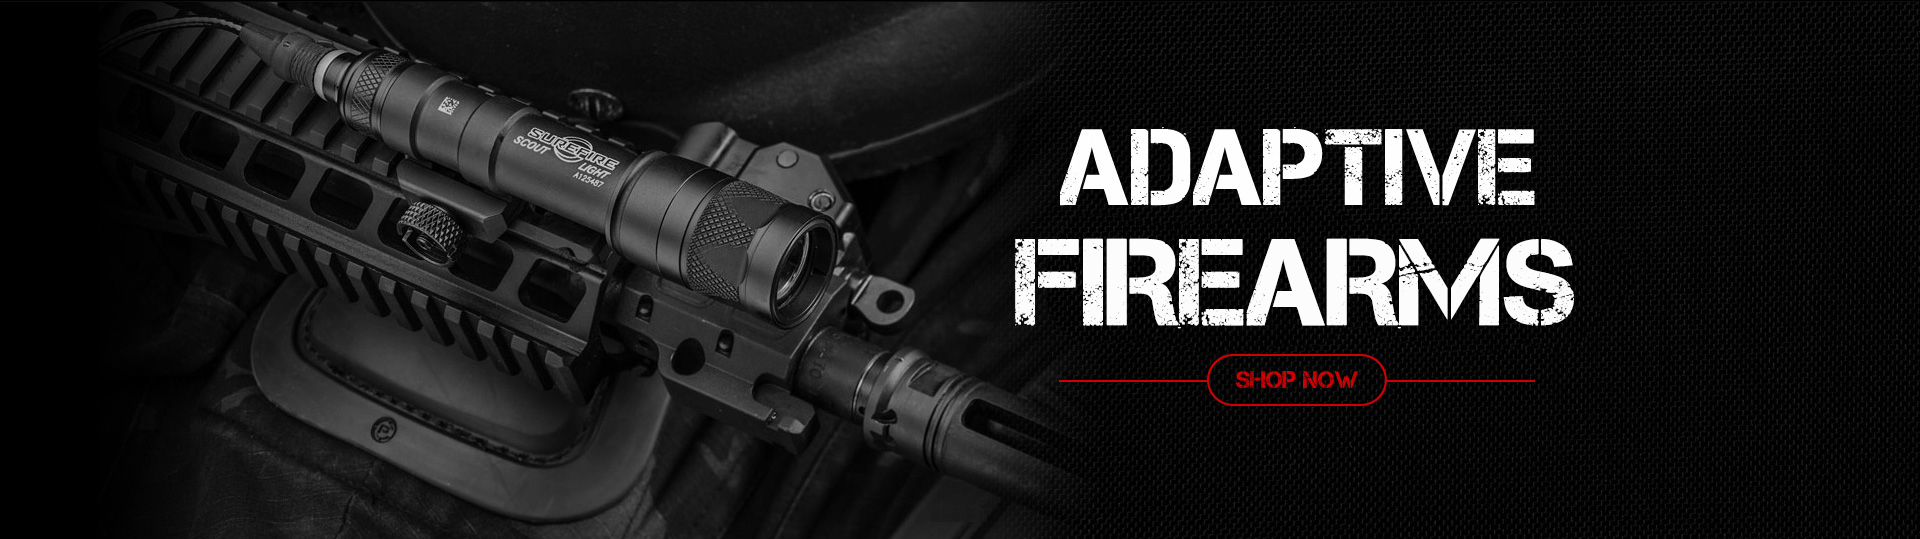 Adaptive Firearms Institute offers tactical firearms training using